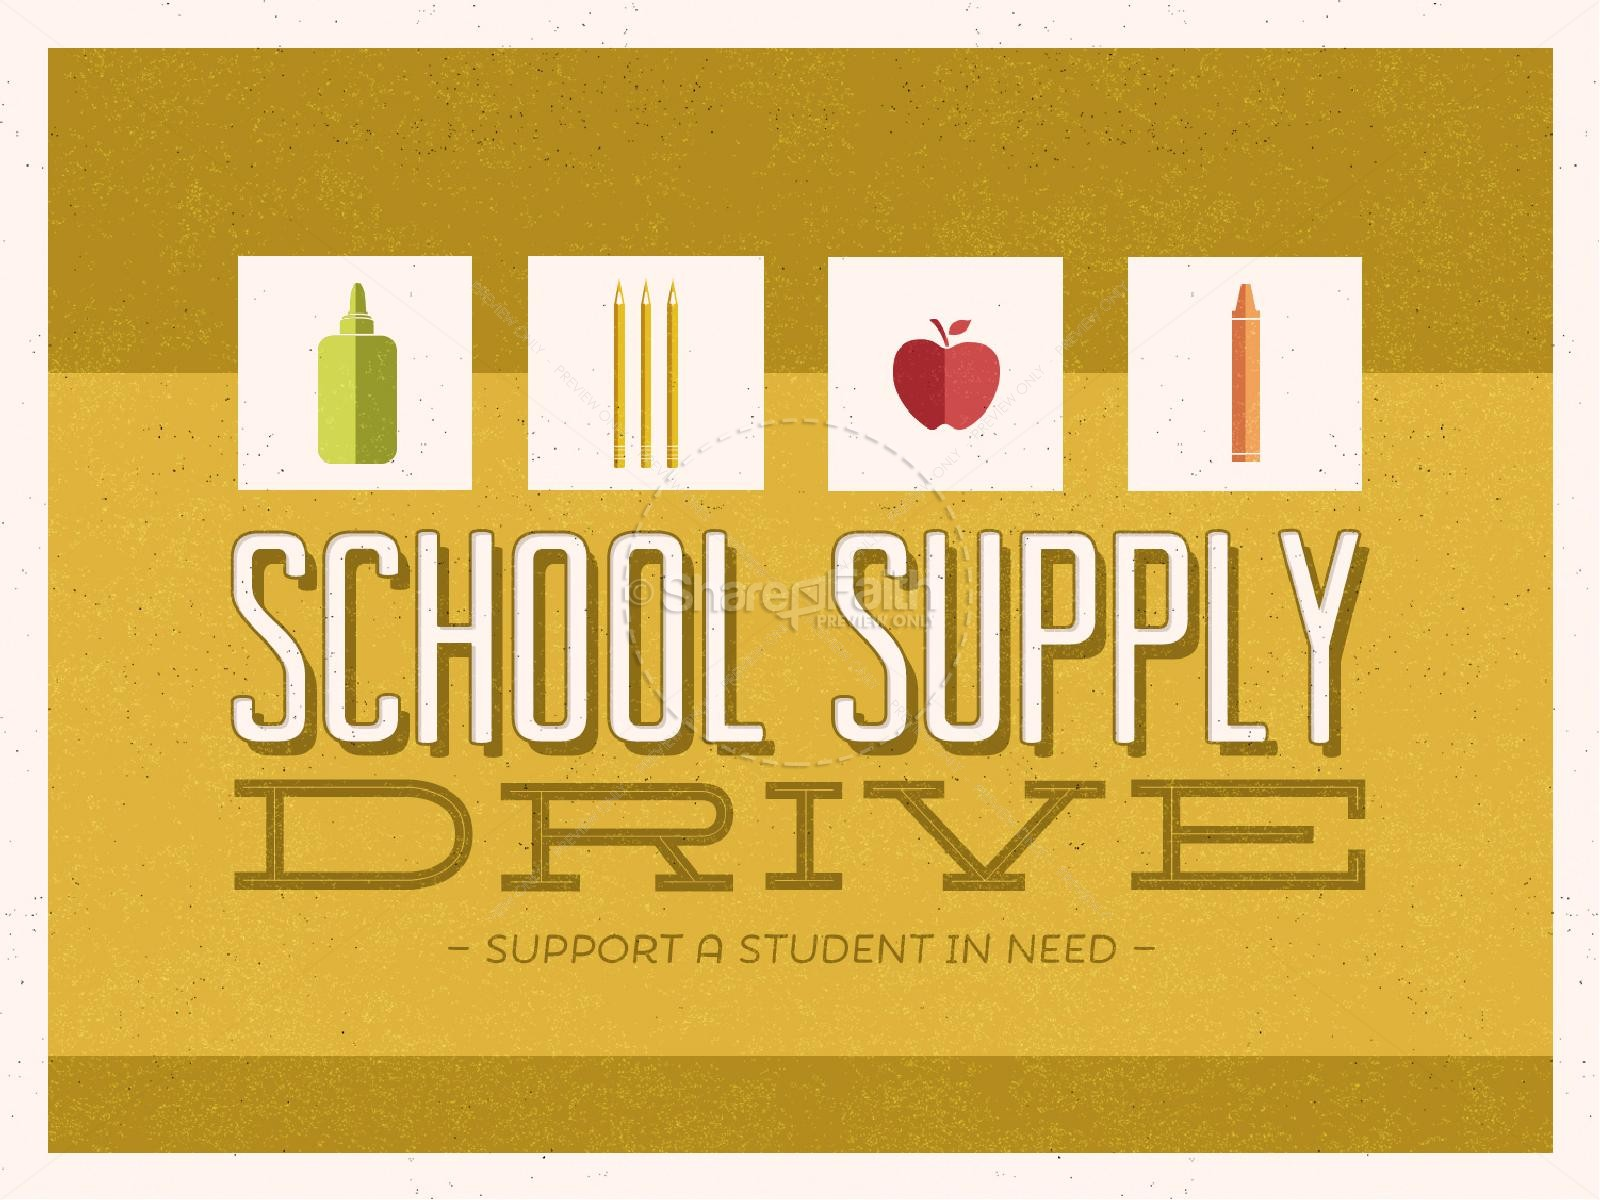 School Supply Drive Church PowerPoint | slide 1